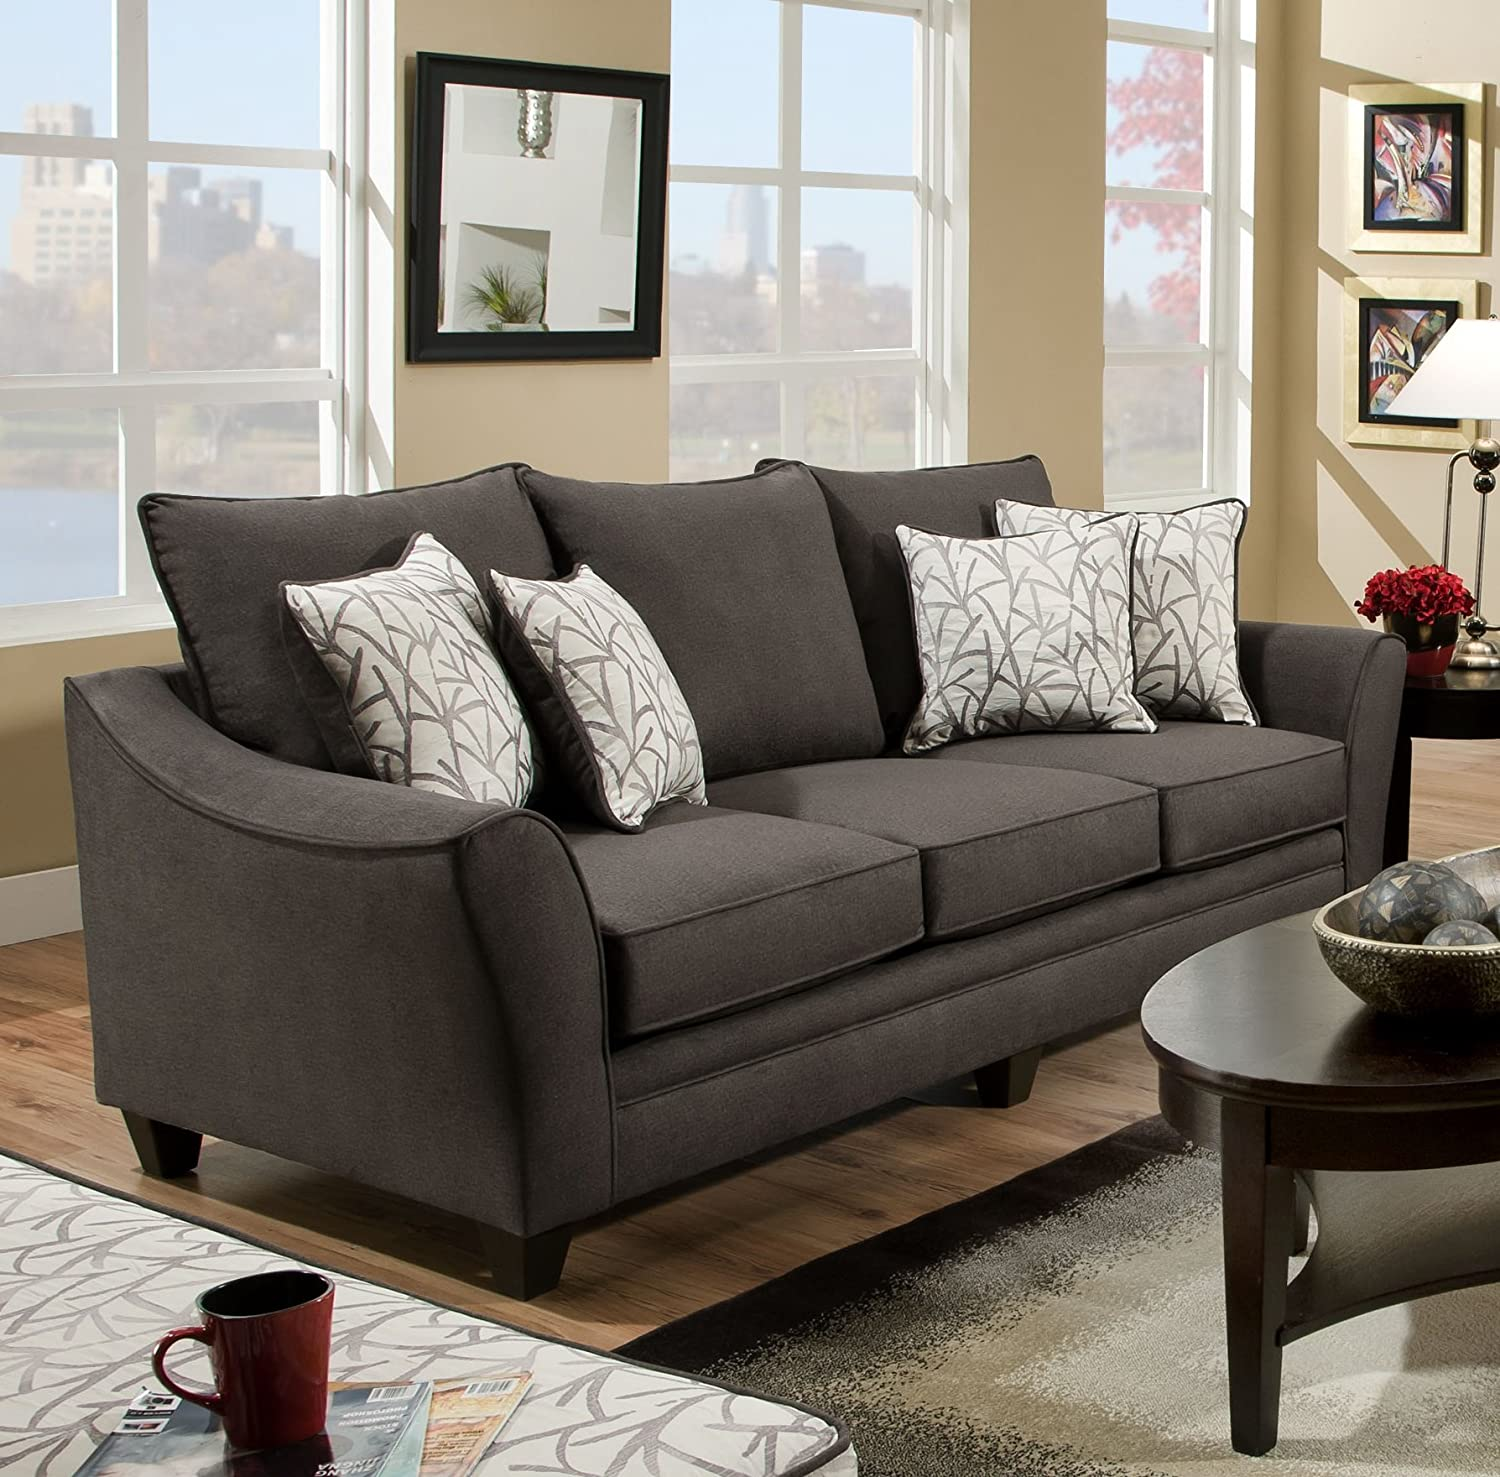 Chelsea Home Furniture Cupertino Sofa - Flannel Seal/Cosmopolitan Birch Pillows